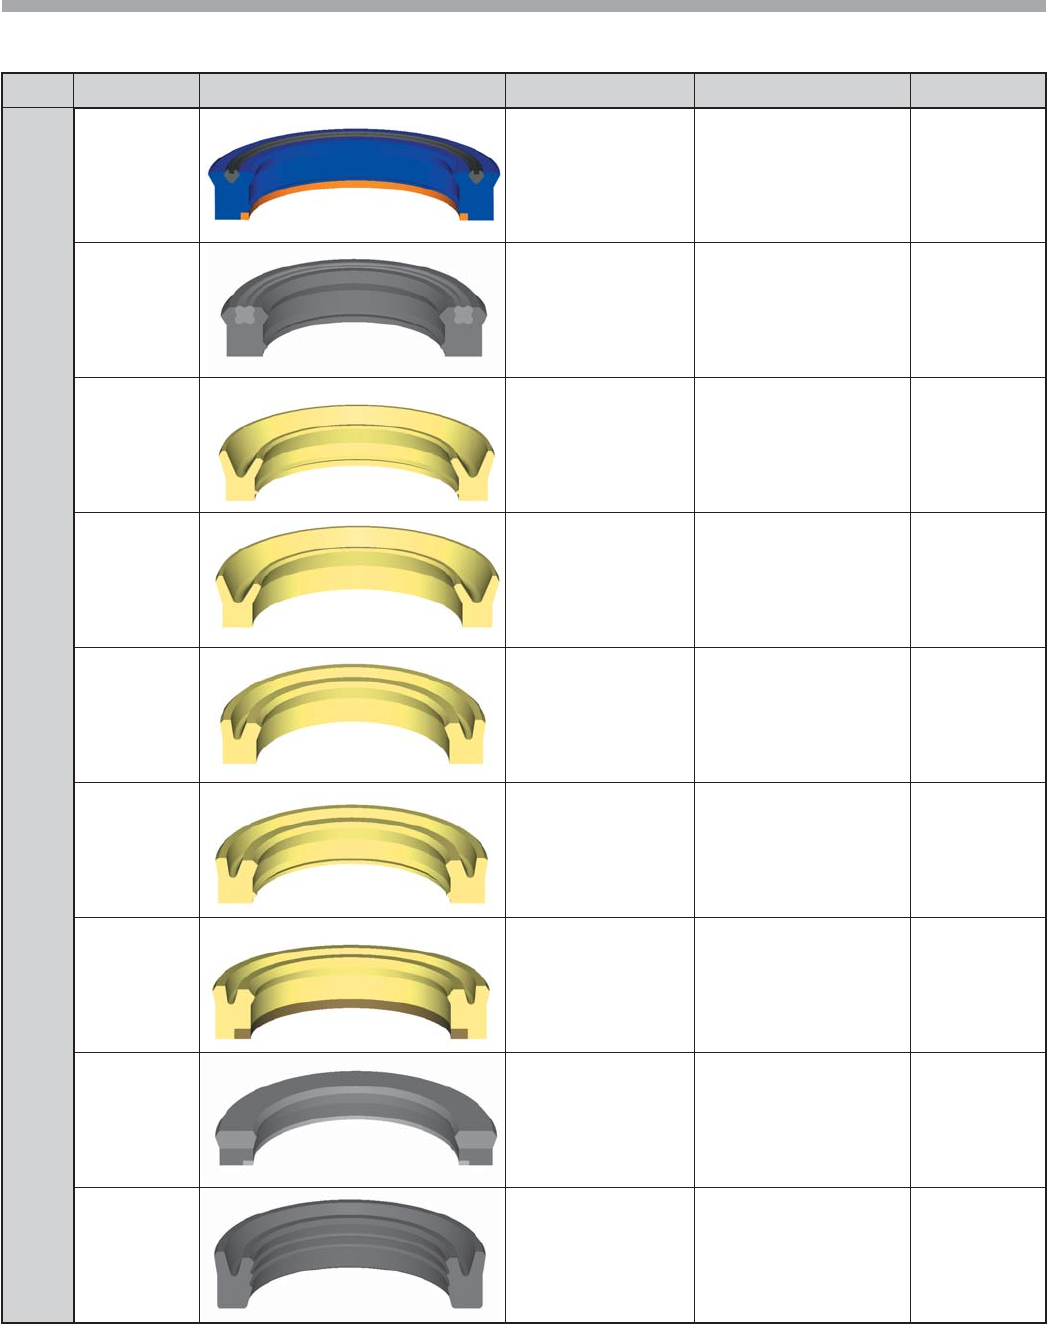 Square Profile 1//8 Width Urethane 5//8 ID Pack of 1 Buna-N O-Ring Loaded Lip Seal 1//8 Height 7//8 OD